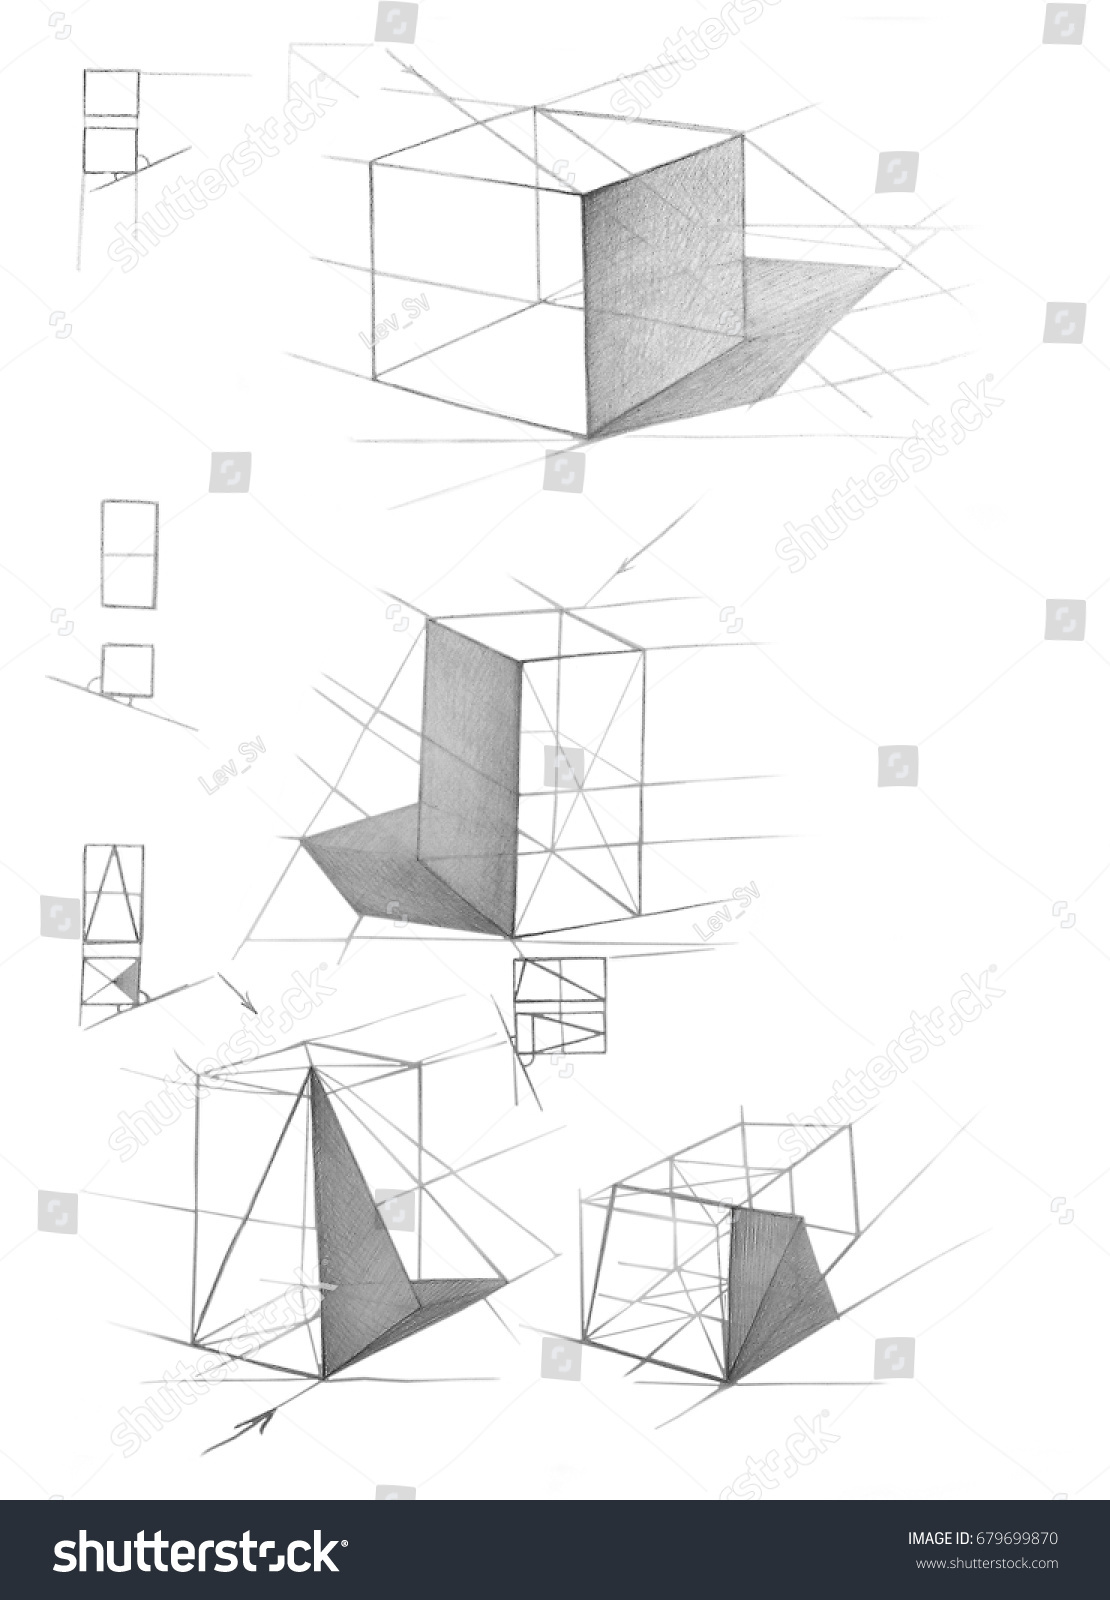 Sketch composition of geometric figures in pencil